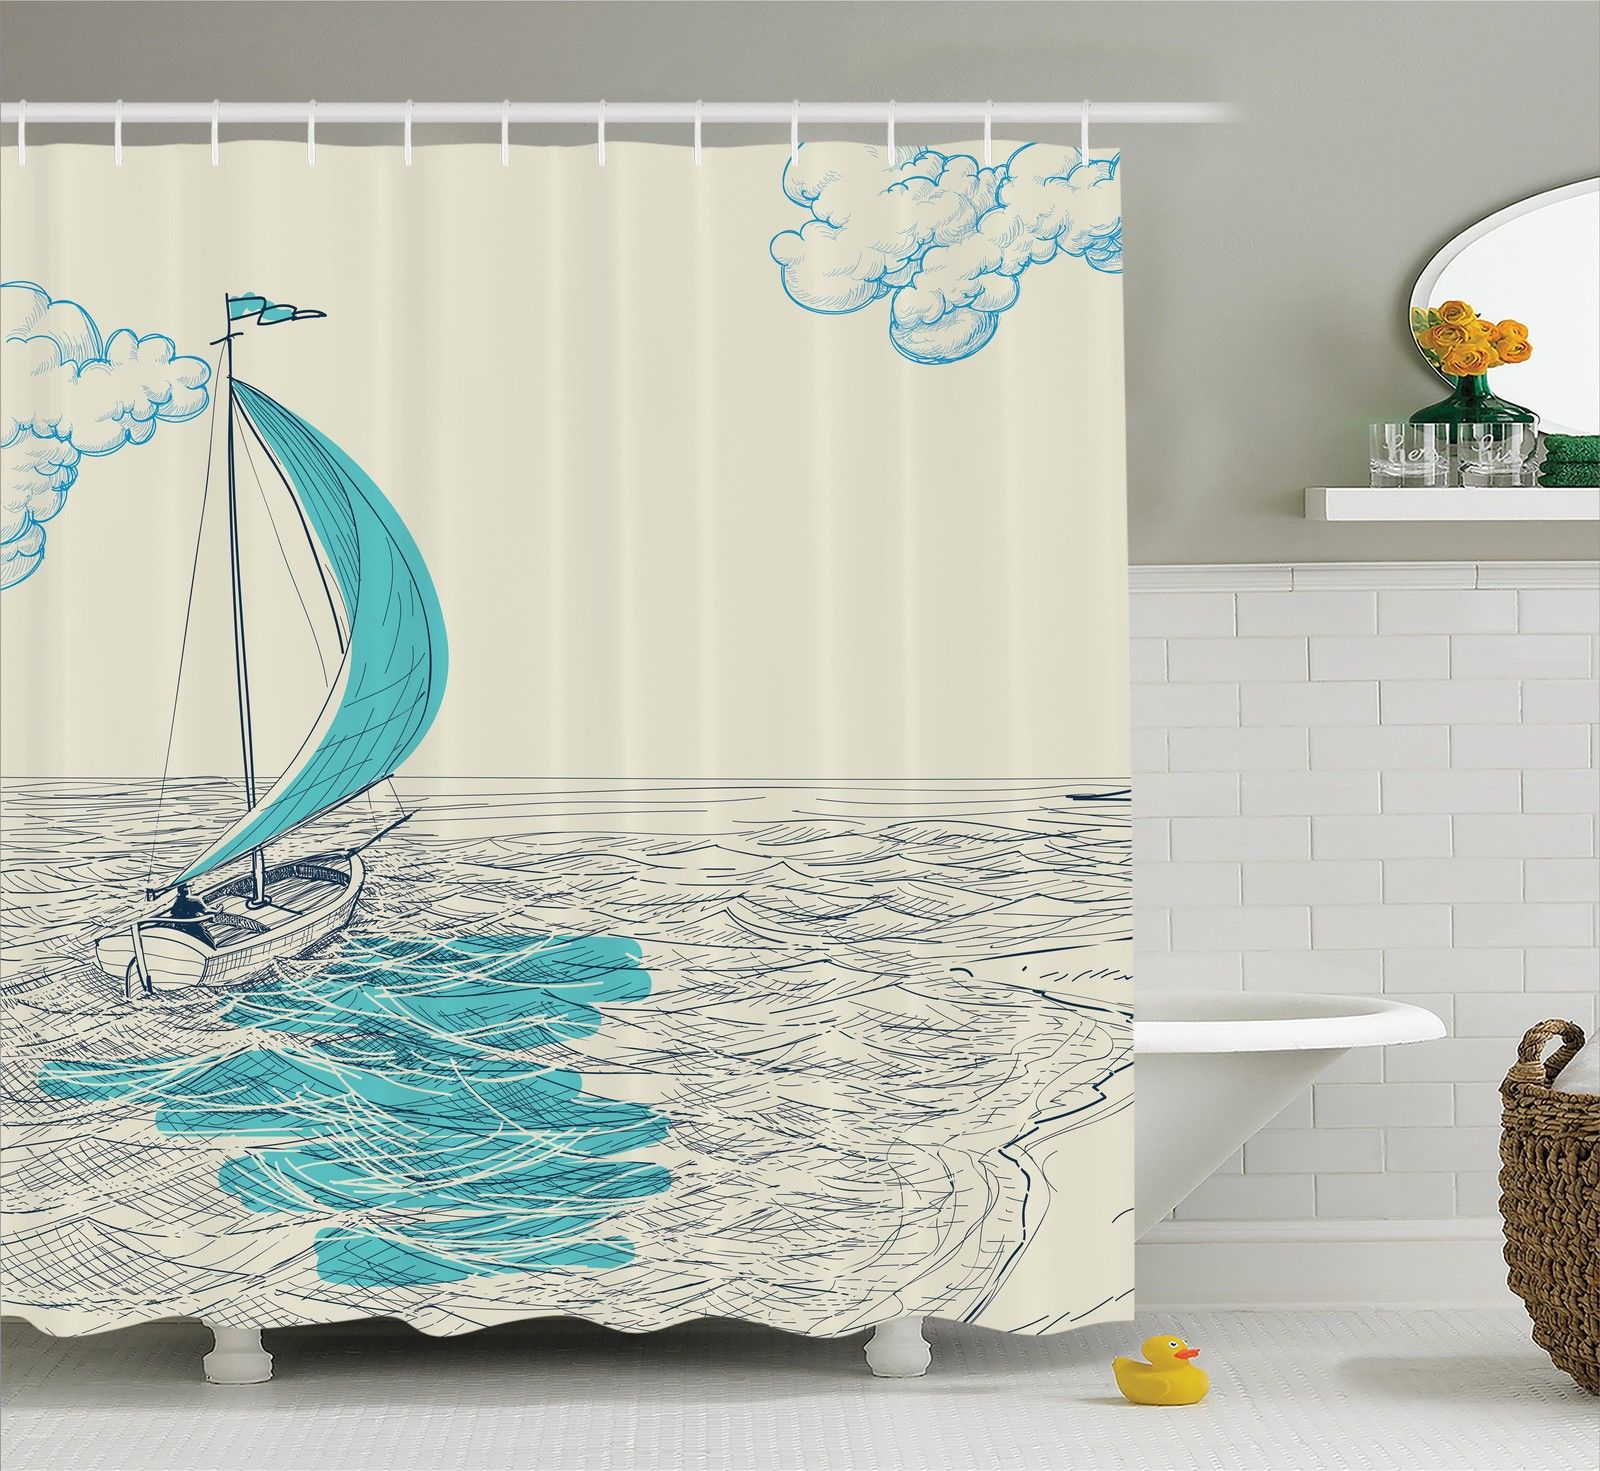 Nautical Decor Shower Curtain Set, Sailing Boat Reflection Cloudy Sky Sandy Seaside Shoreline Hobby Water Sports, Bathroom Accessories, 69W X 70L Inches, By Ambesonne